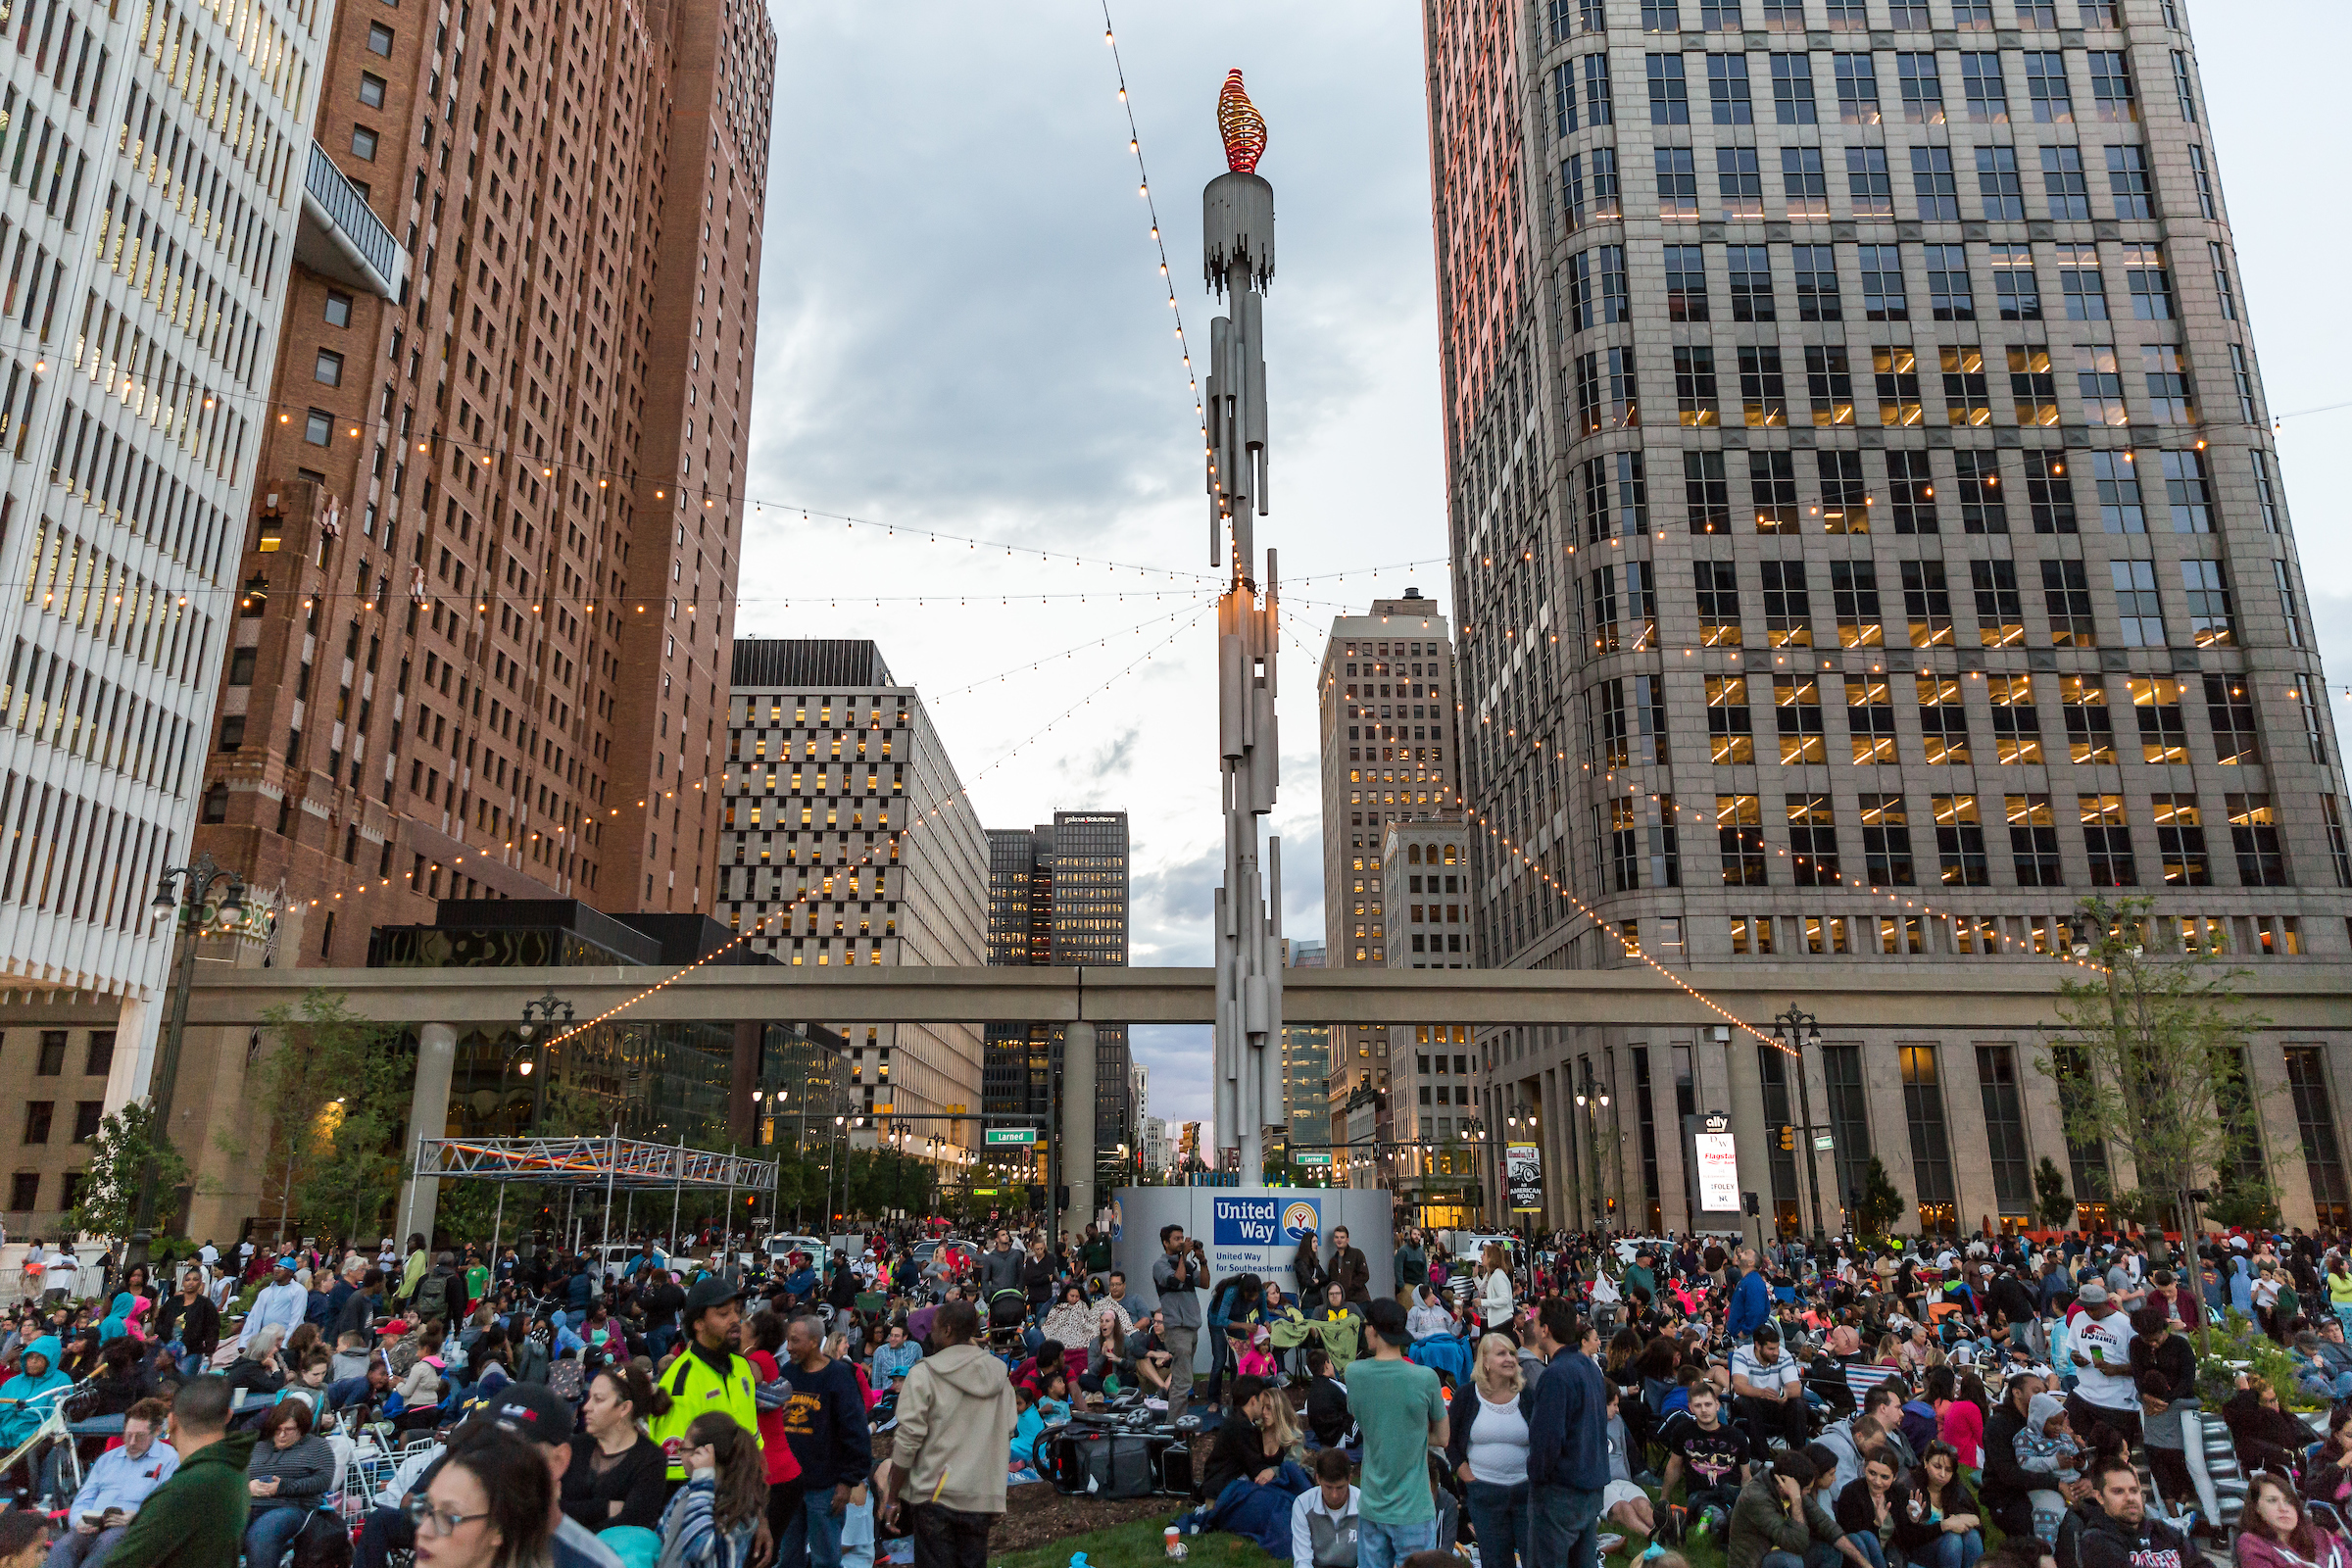 A big gathering at a downtown park. People stand or sit in foldable chairs around a metal statue. Tall buildings surround the mass of people.